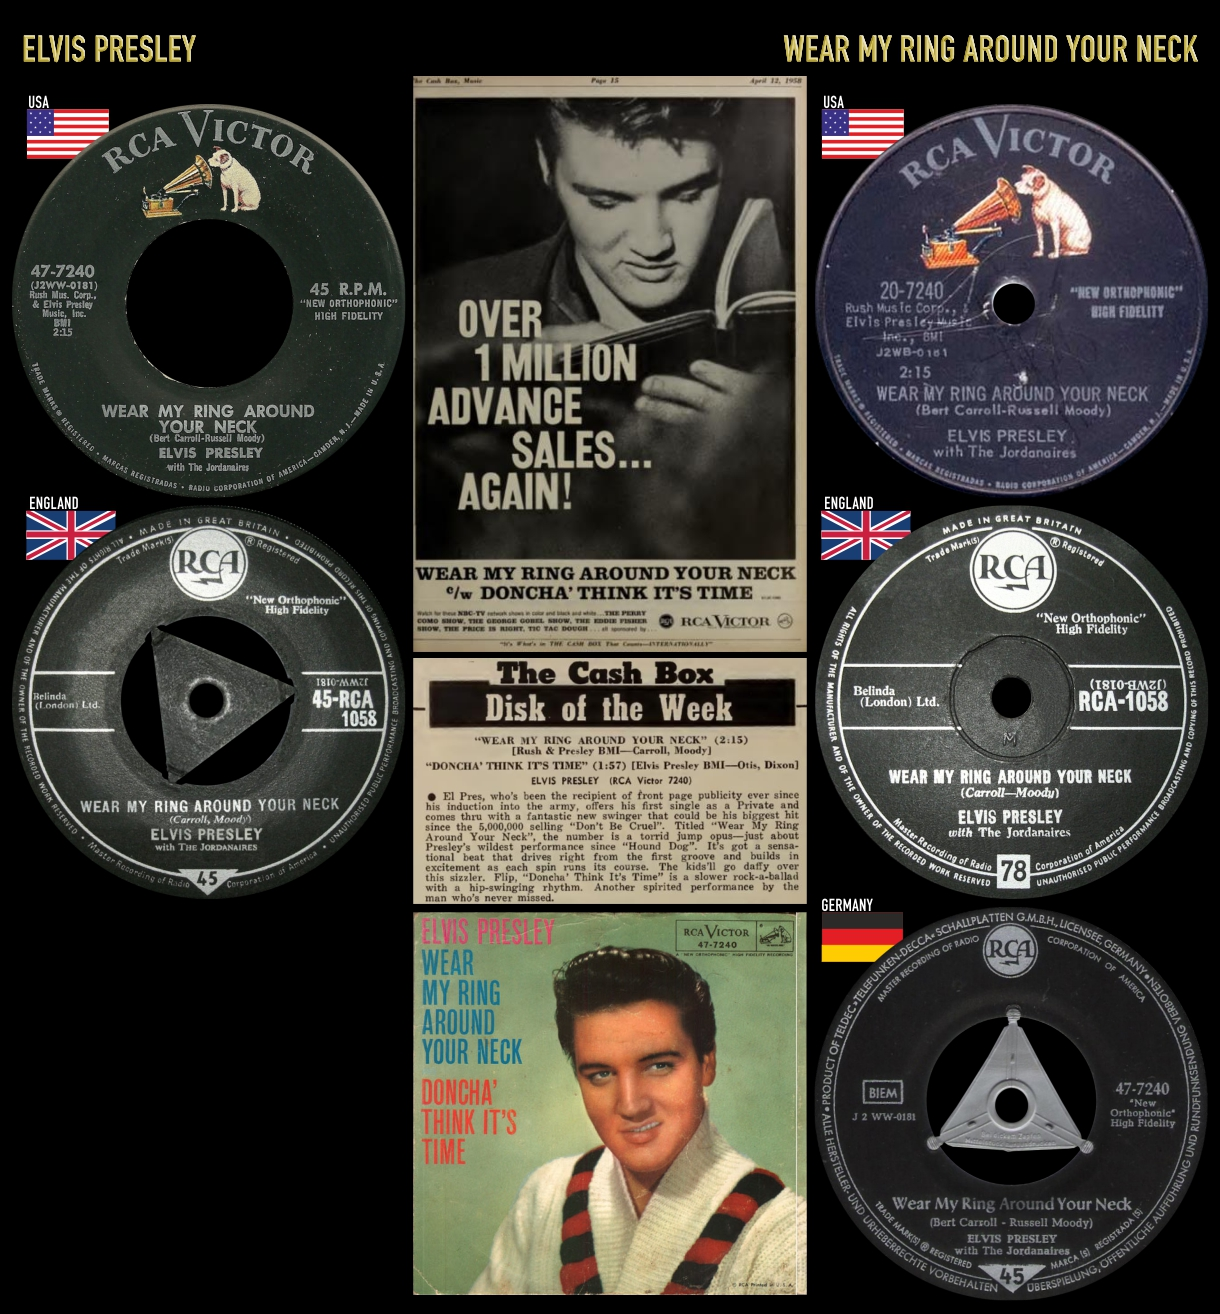 580419_Elvis Presley_Wear My Ring Around Your Neck